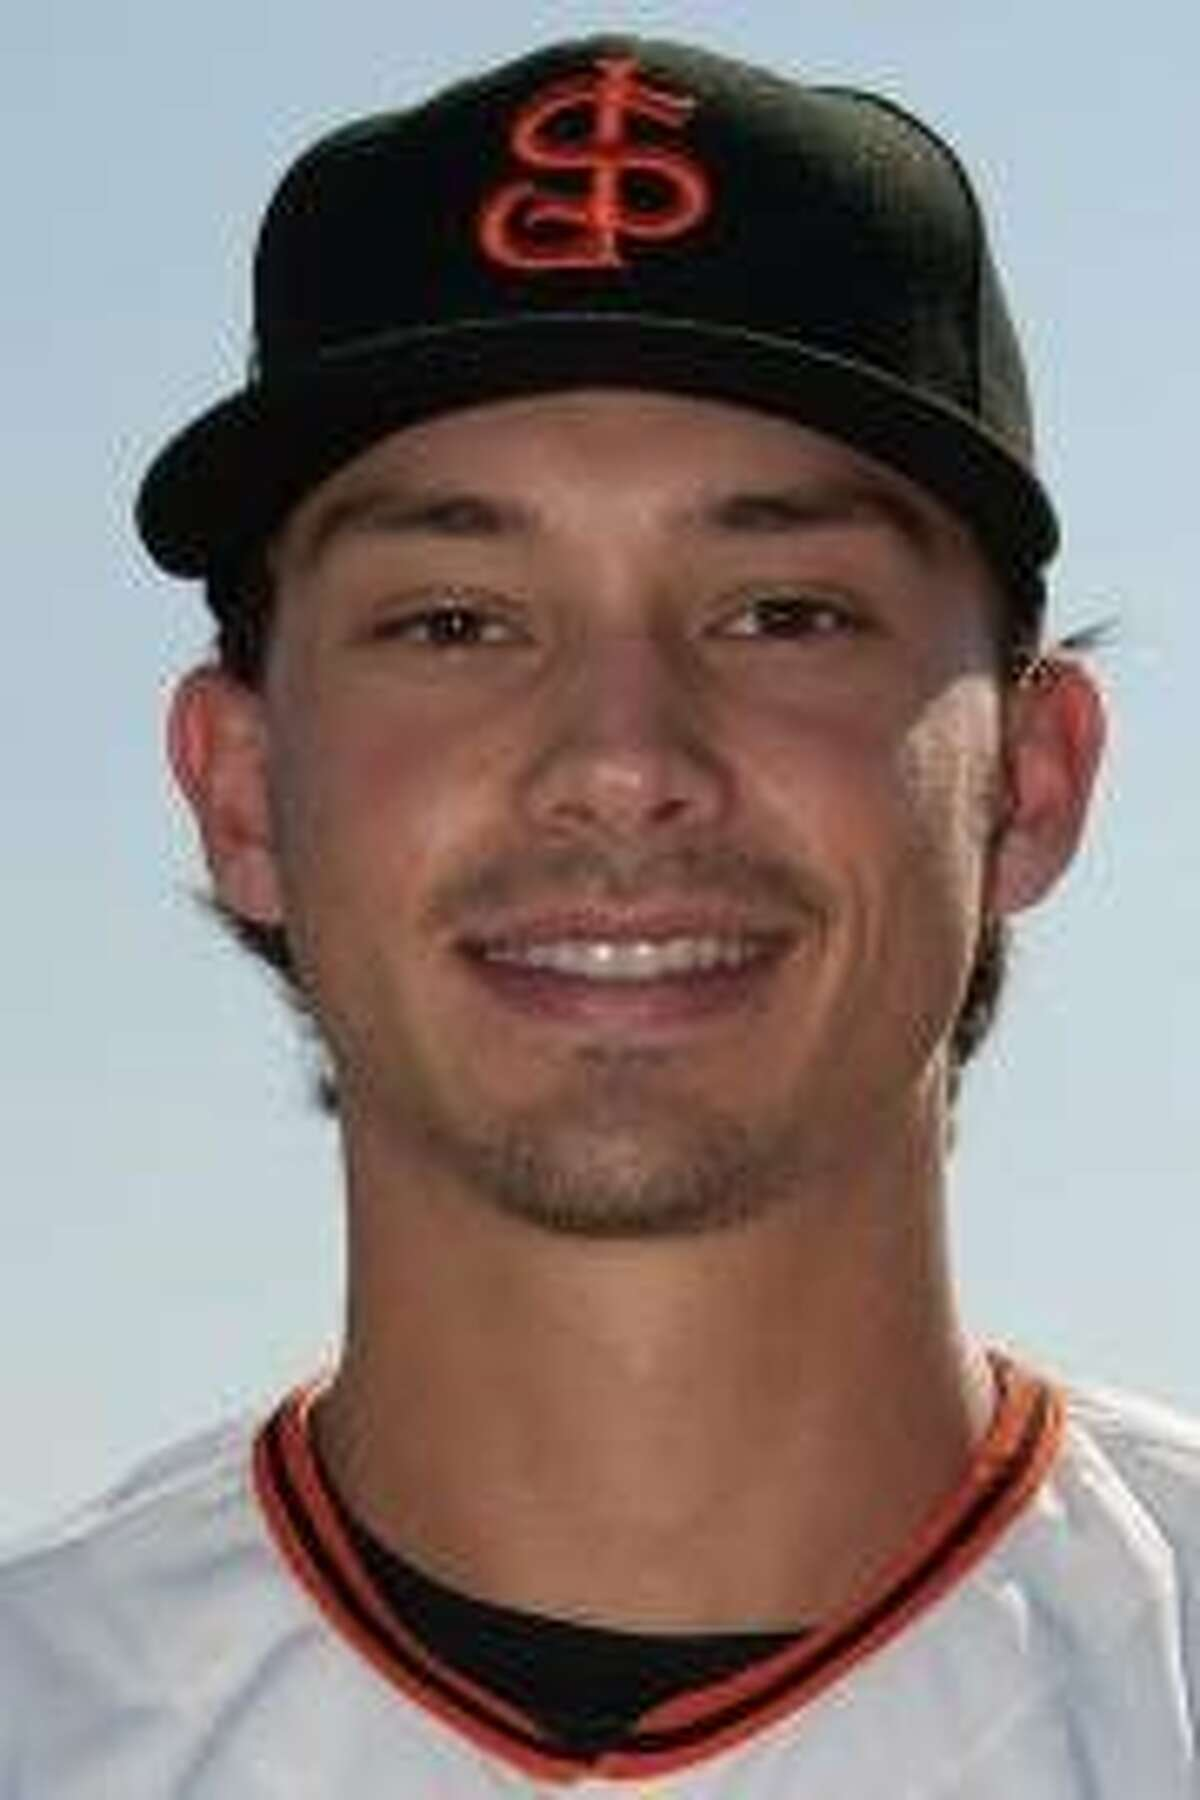 San Jose Giants outfielder Bryan Reynolds, whom the Giants selected with their first pick in the 2016 draft